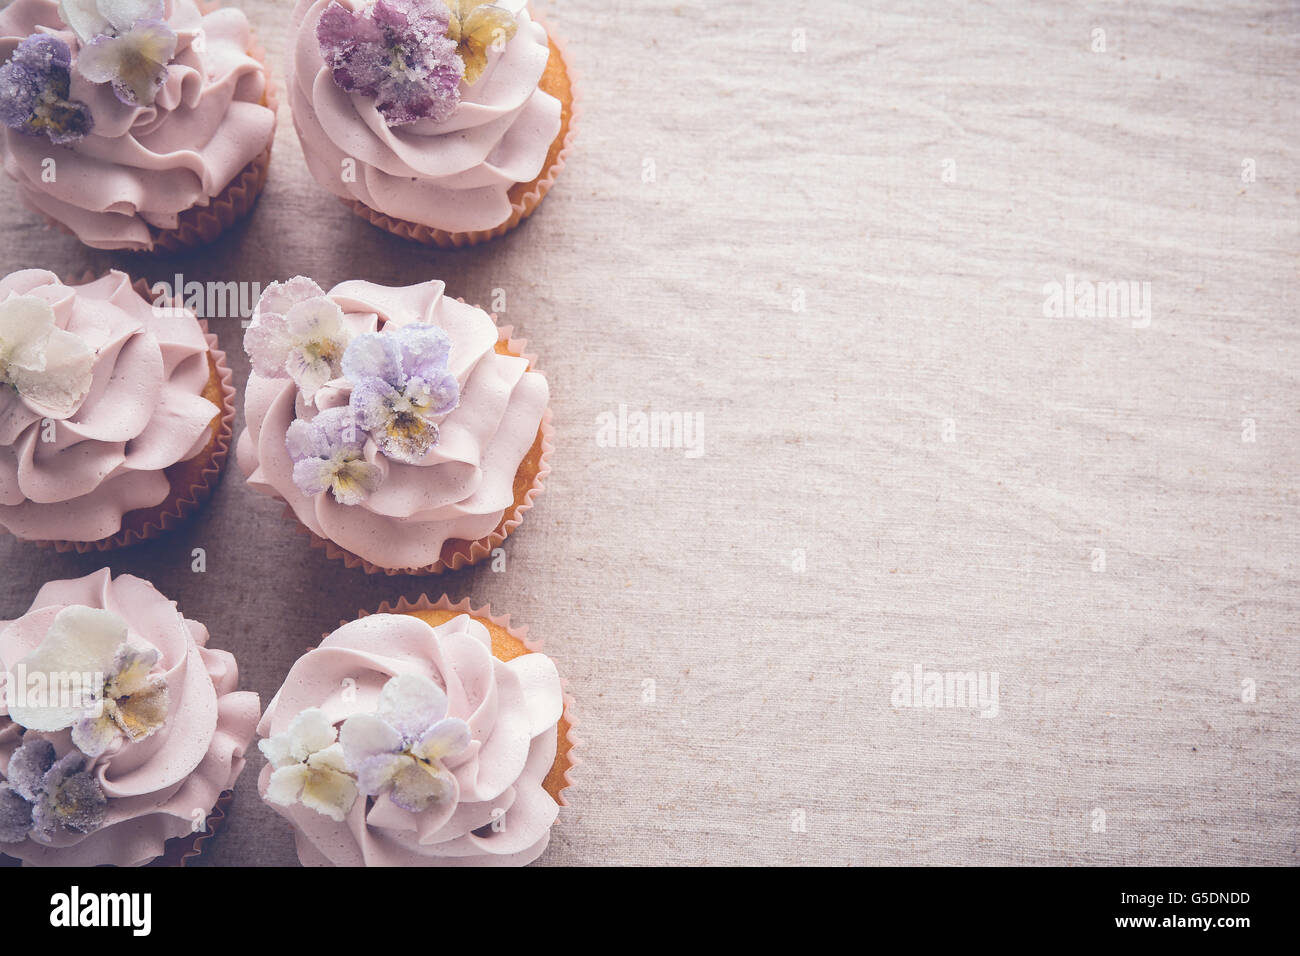 Purple cupcakes with sugared edible flowers copy space background, vintage toning - Stock Image